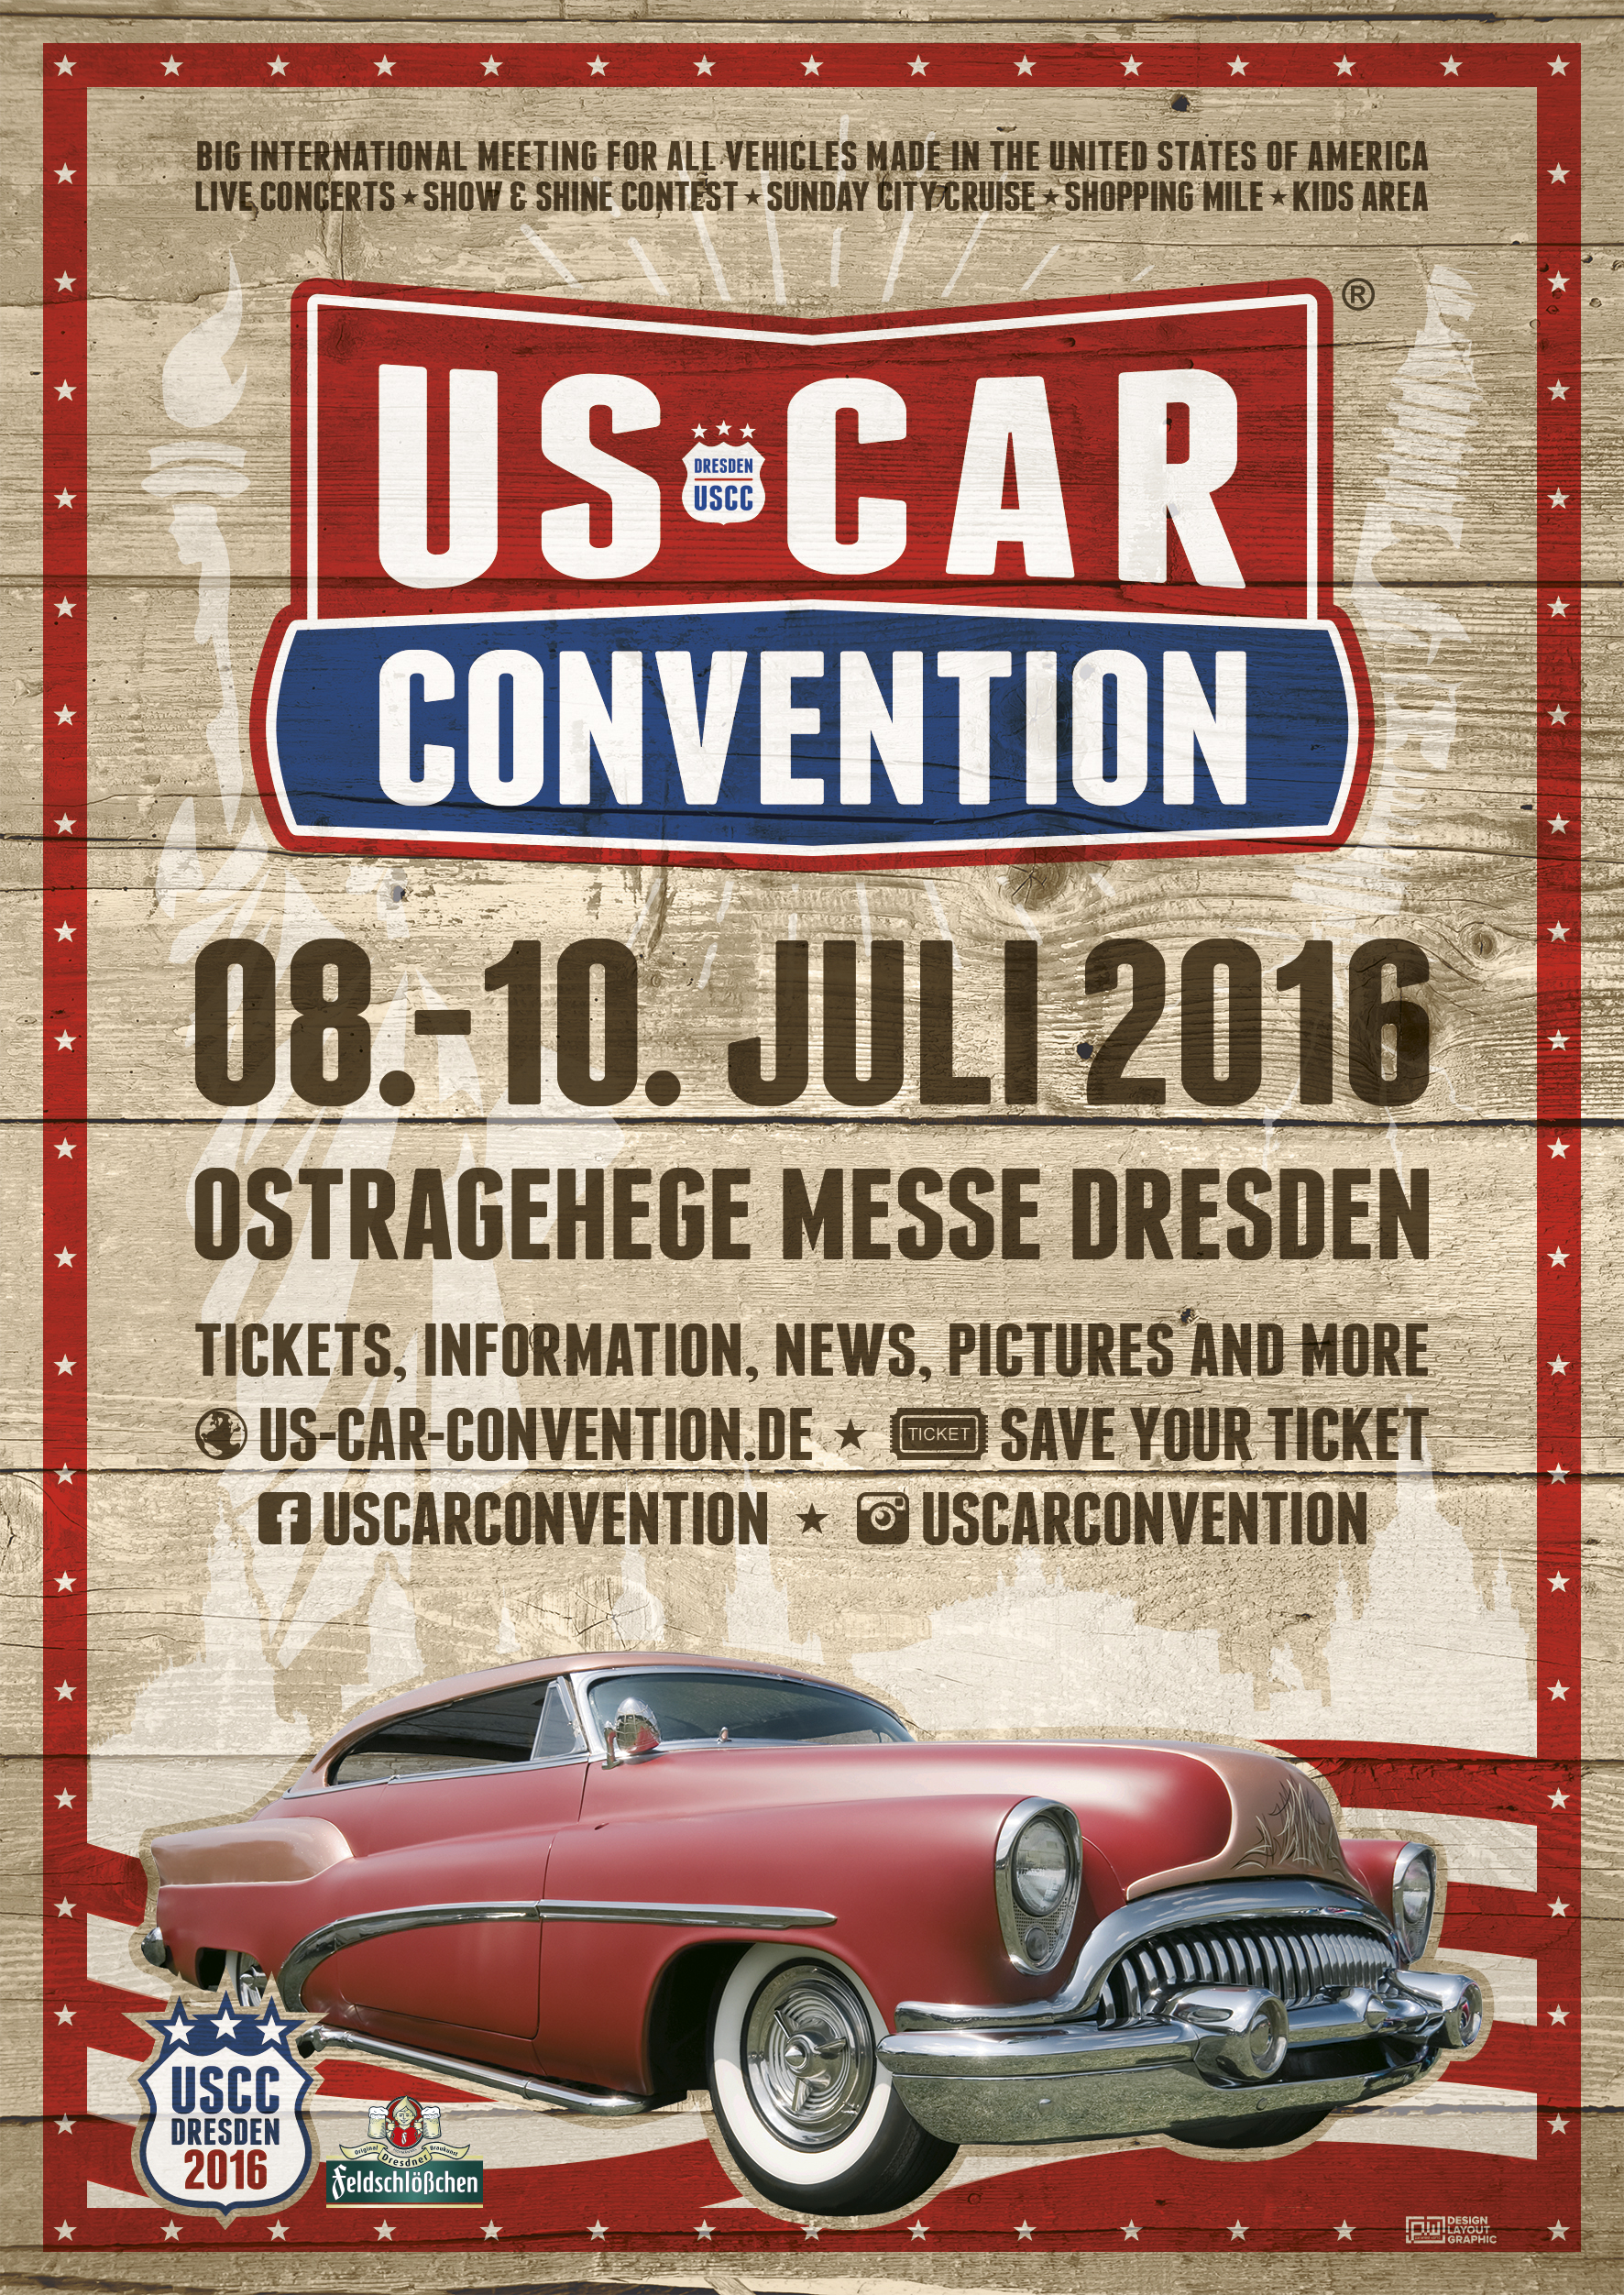 2016-07_uscc-dresden_A5-flyer-v1_front_vFinal_LOW-RES.jpg